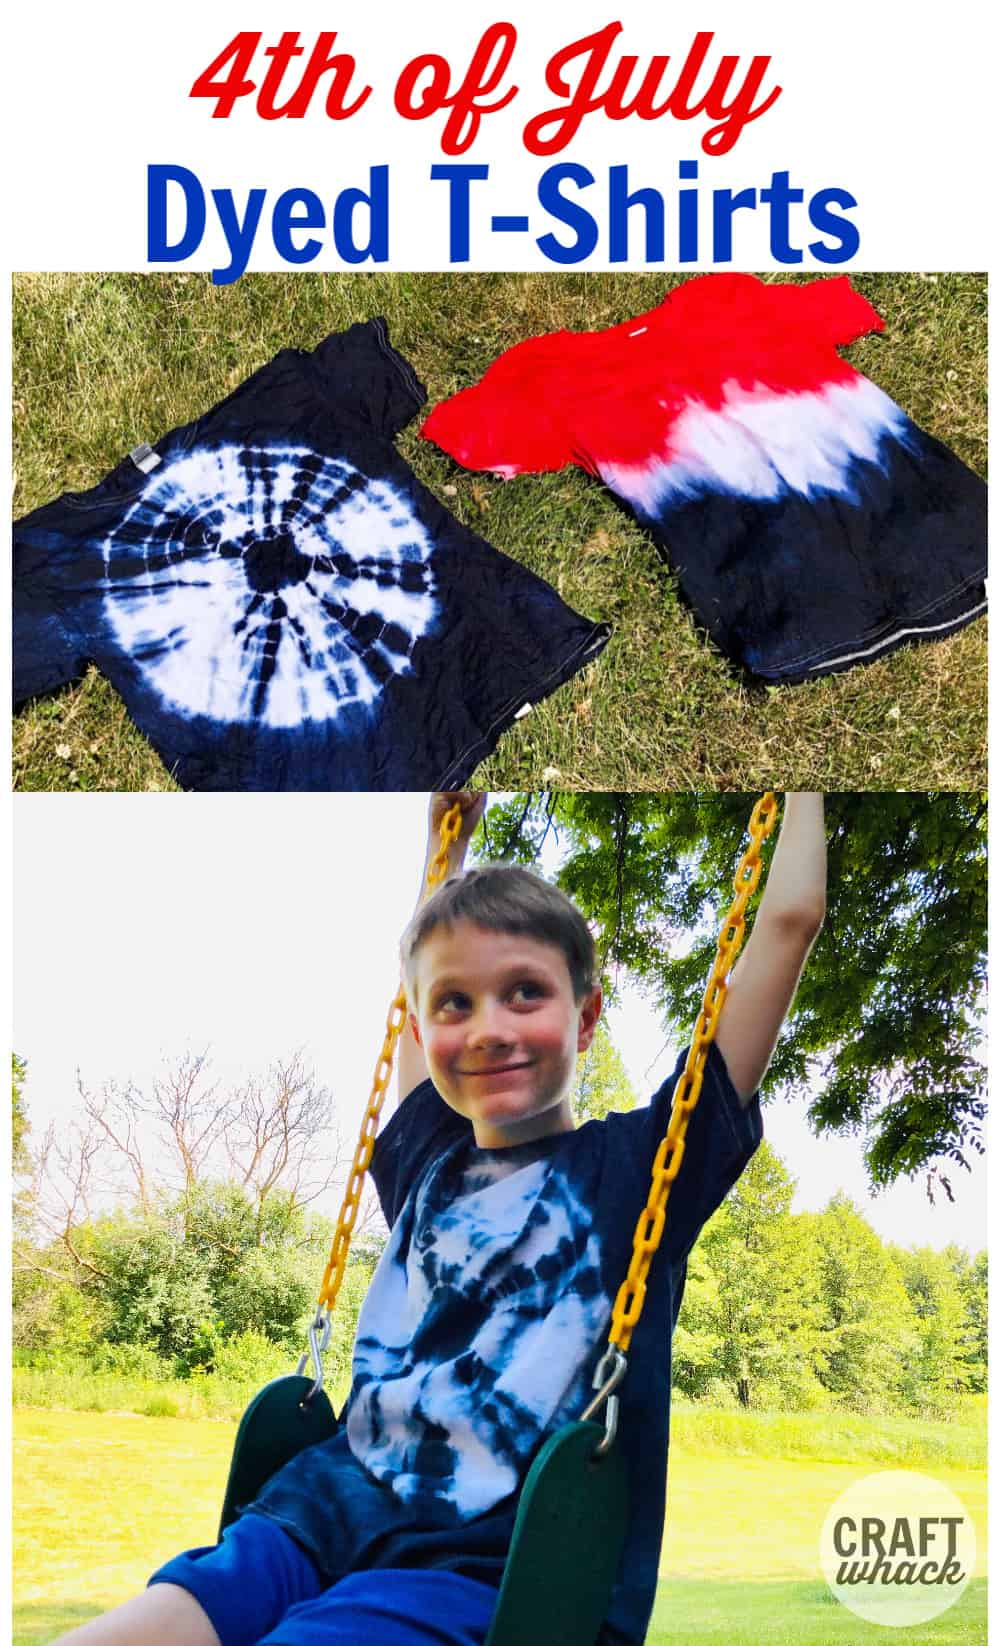 2 dyed t-shirts for 4th of july craft